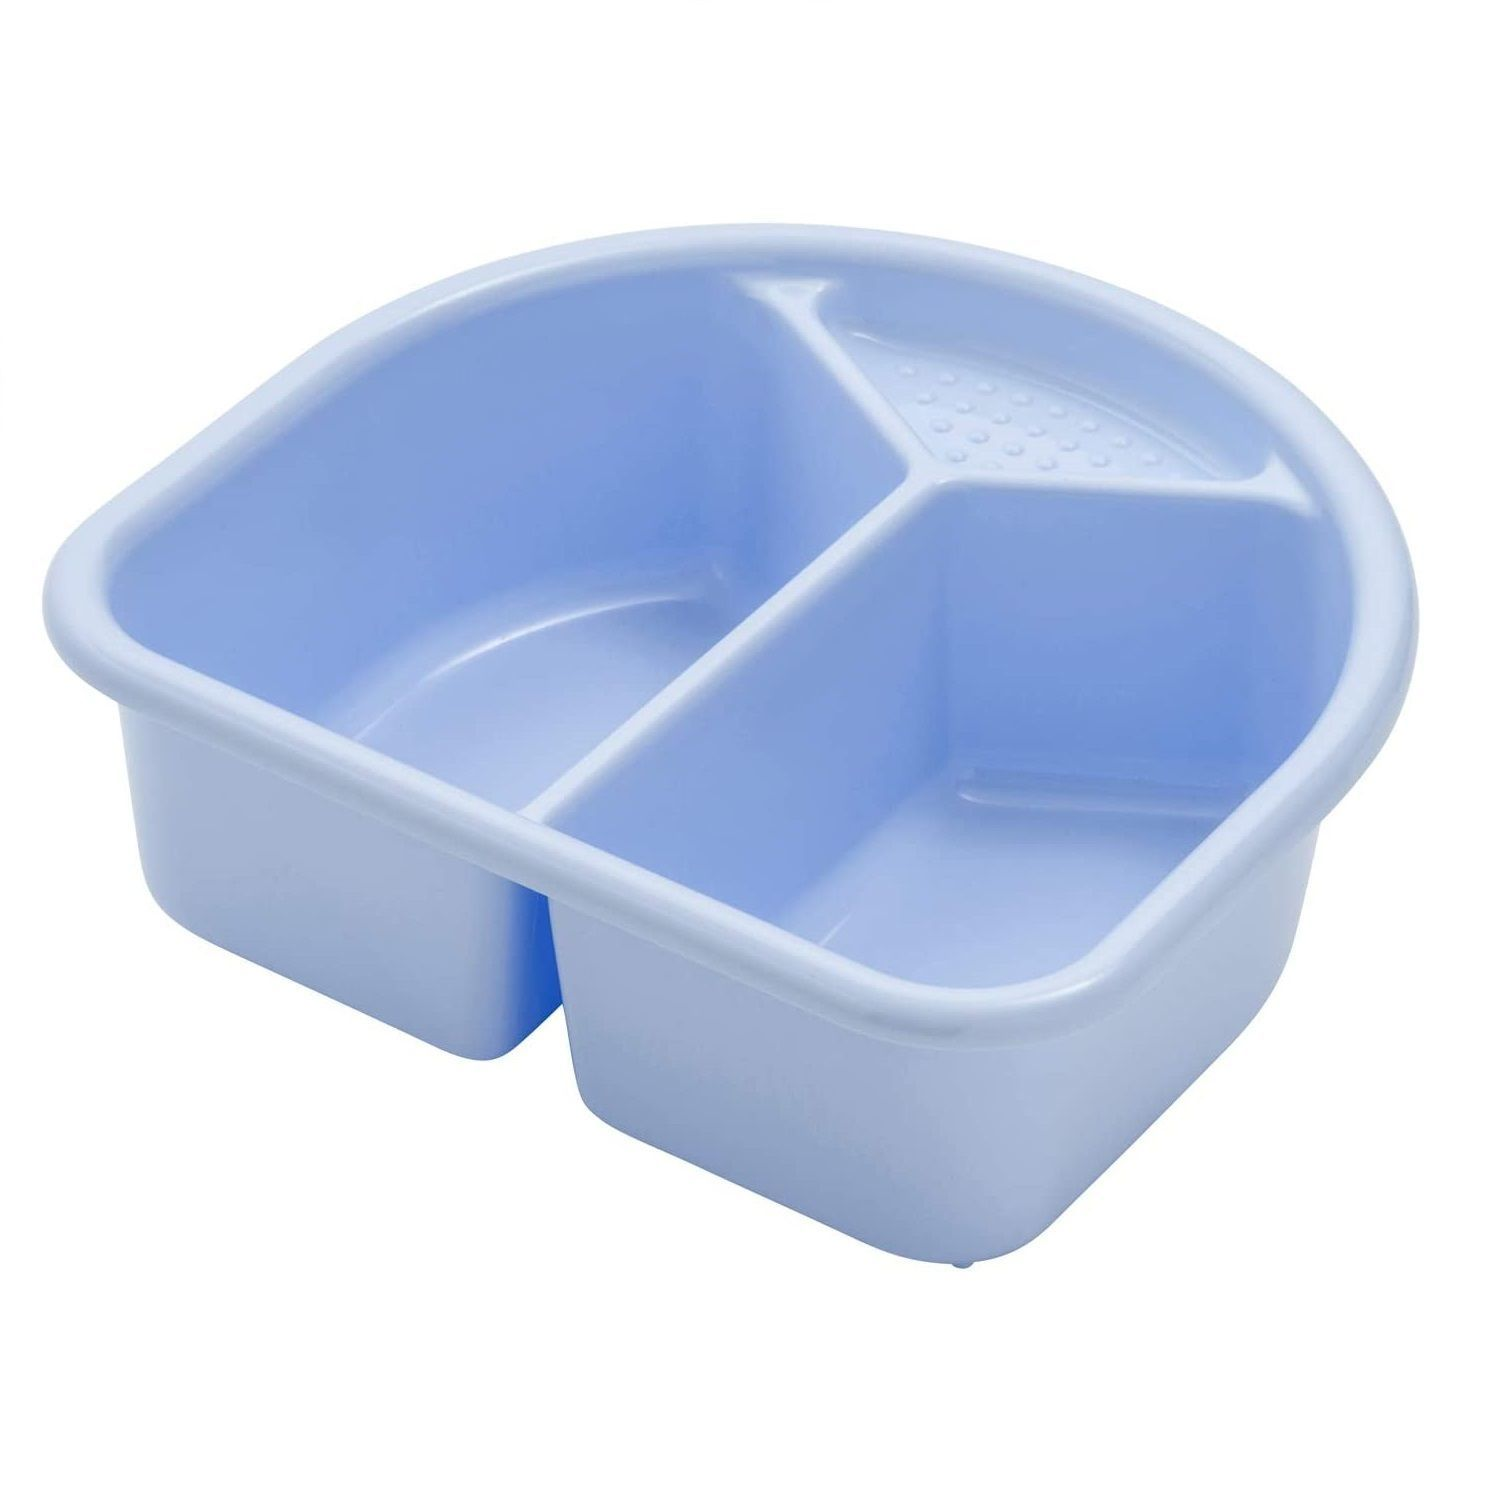 Rotho Babydesign Top n Tail Bowl - Choose your colour - Sky Blue